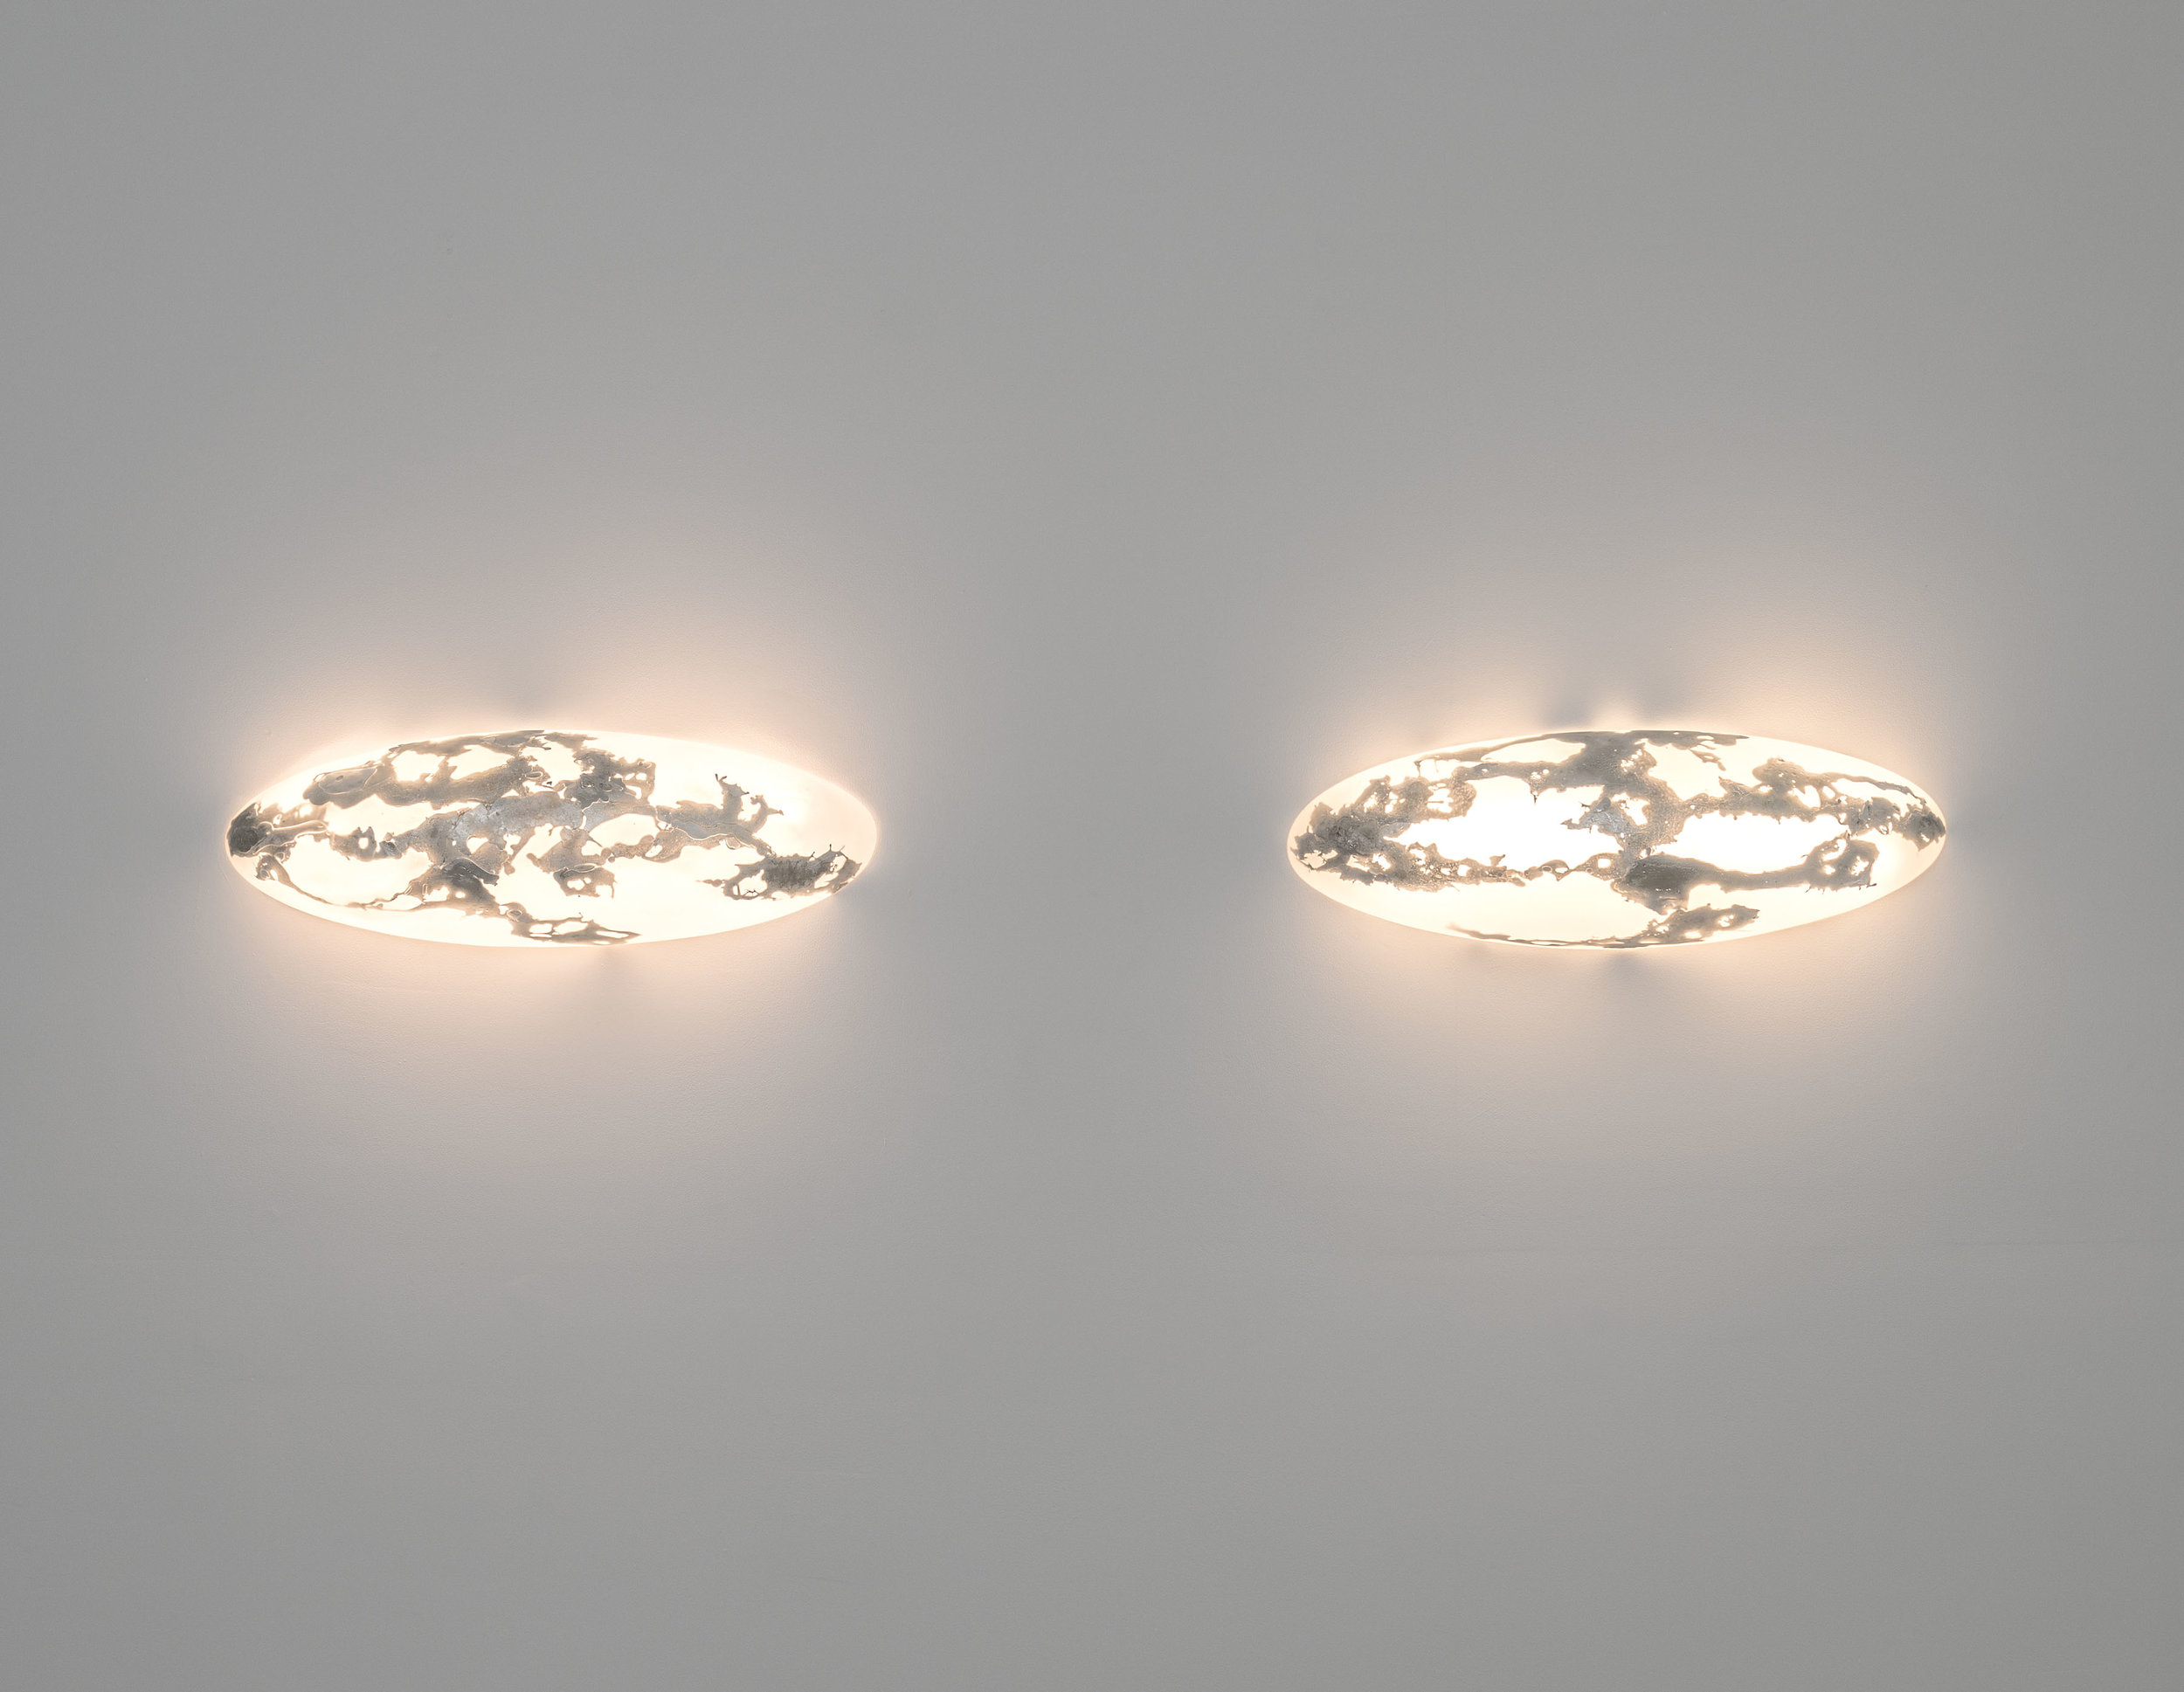 pearl sconces lit.jpg